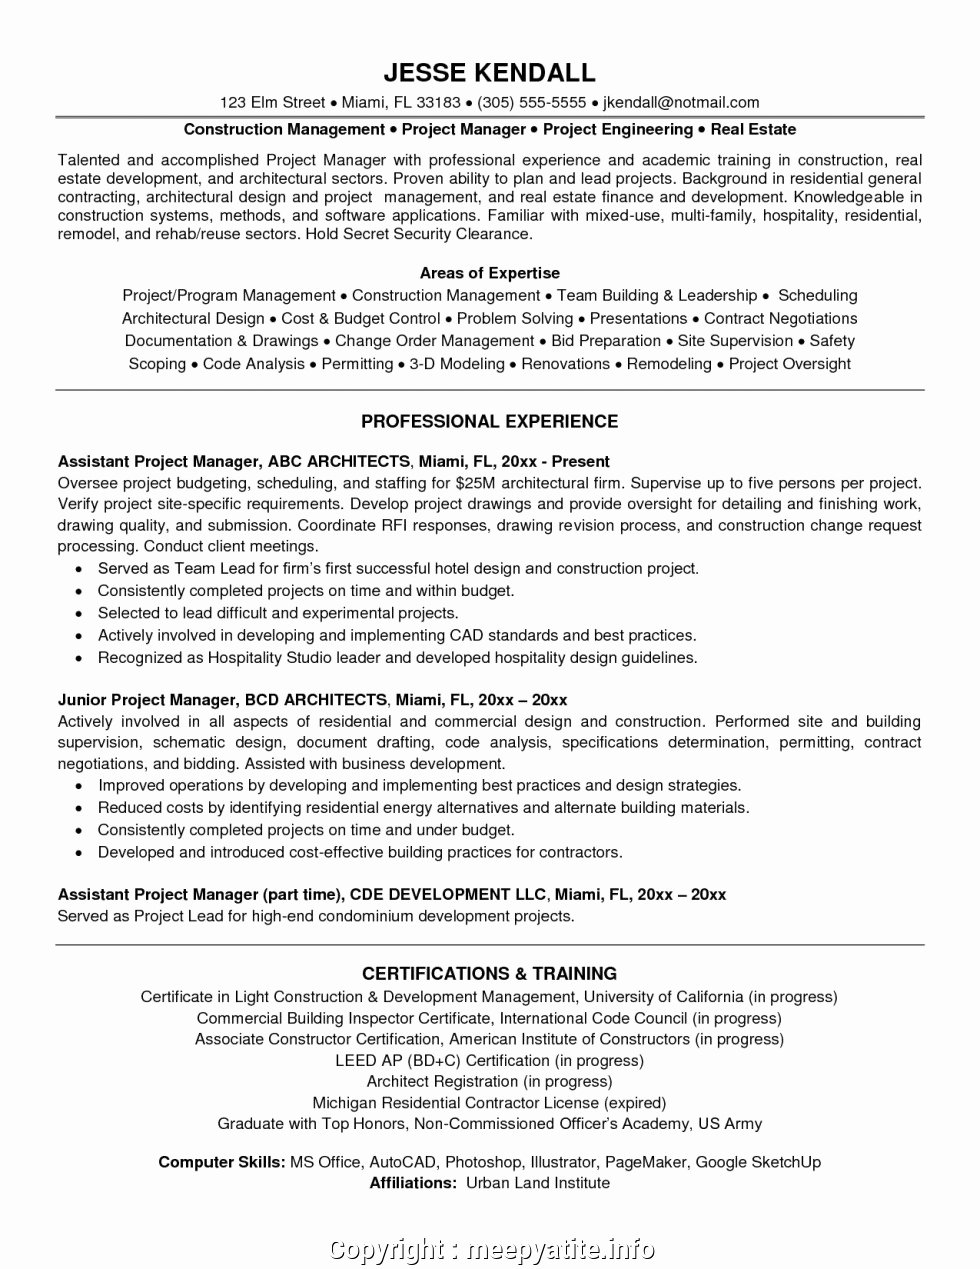 Restaurant General Manager Resume Example Inspirational Professional Restaurant Manager License Restaurant General